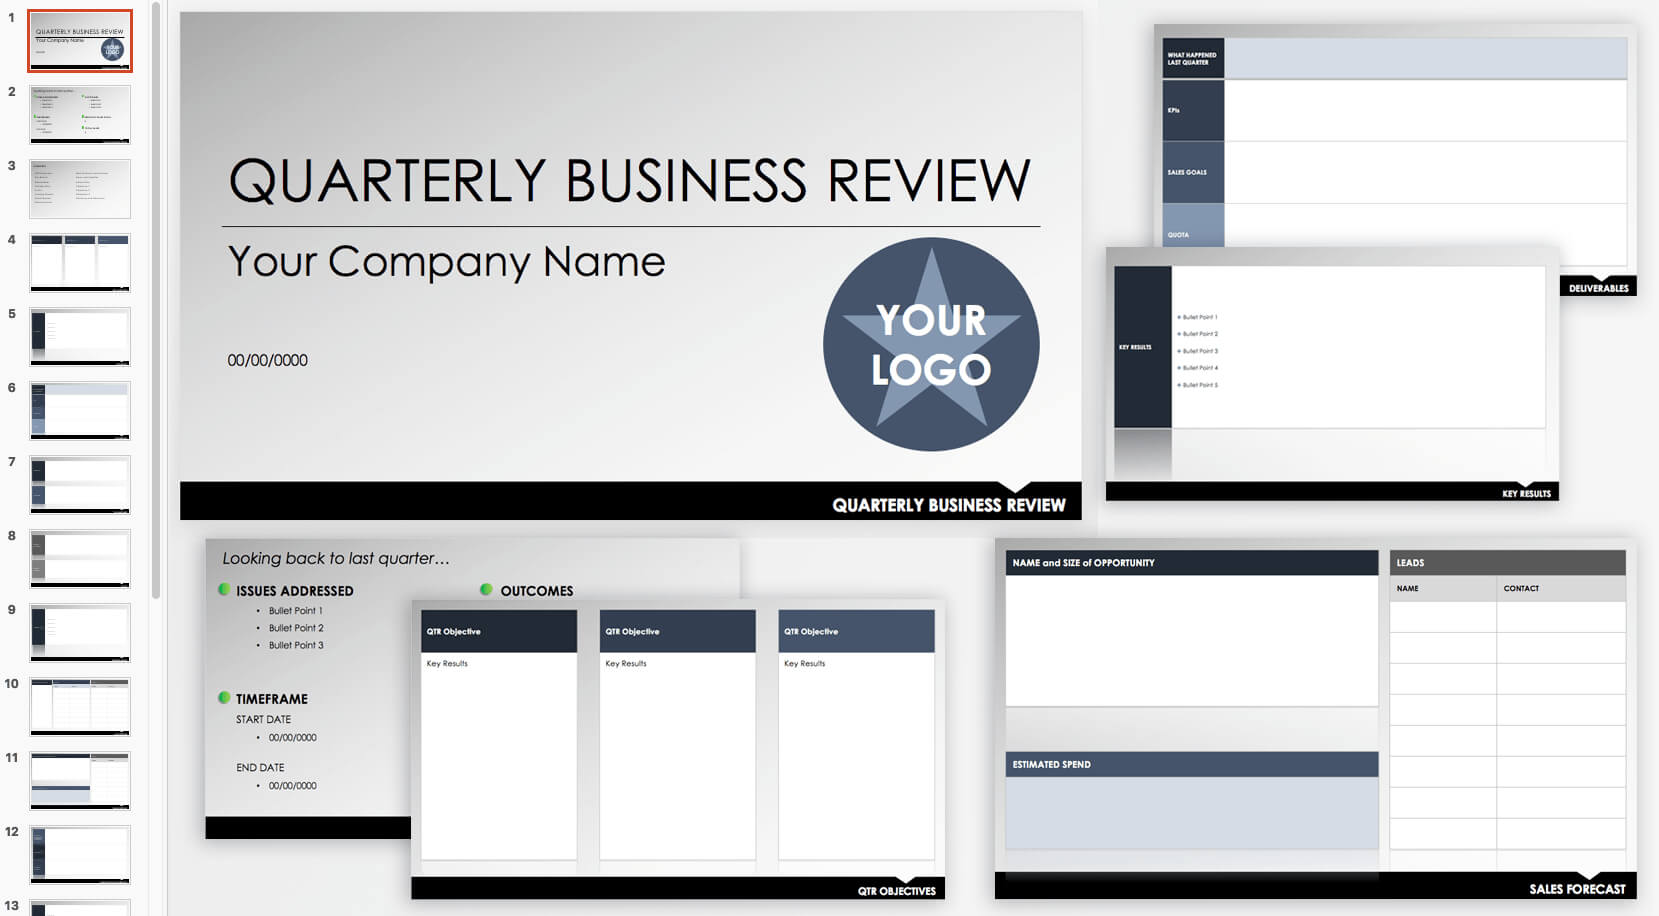 Free Qbr And Business Review Templates   Smartsheet Within Business Review Report Template